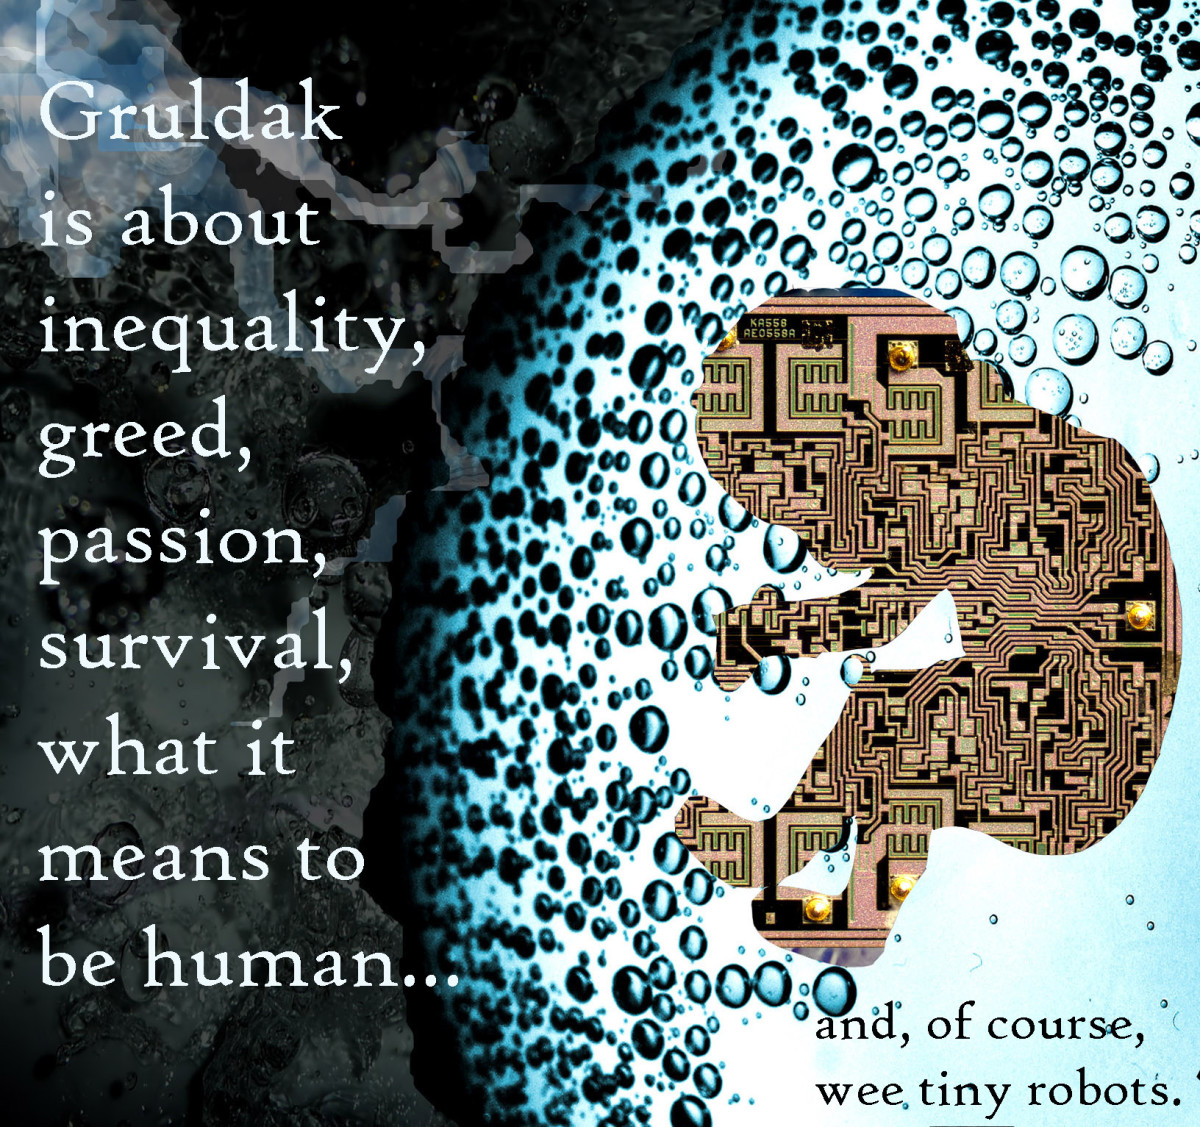 Gift of the Gruldak, a Serialized Science Fiction Novel by Kylyssa Shay That's Free to Read Online